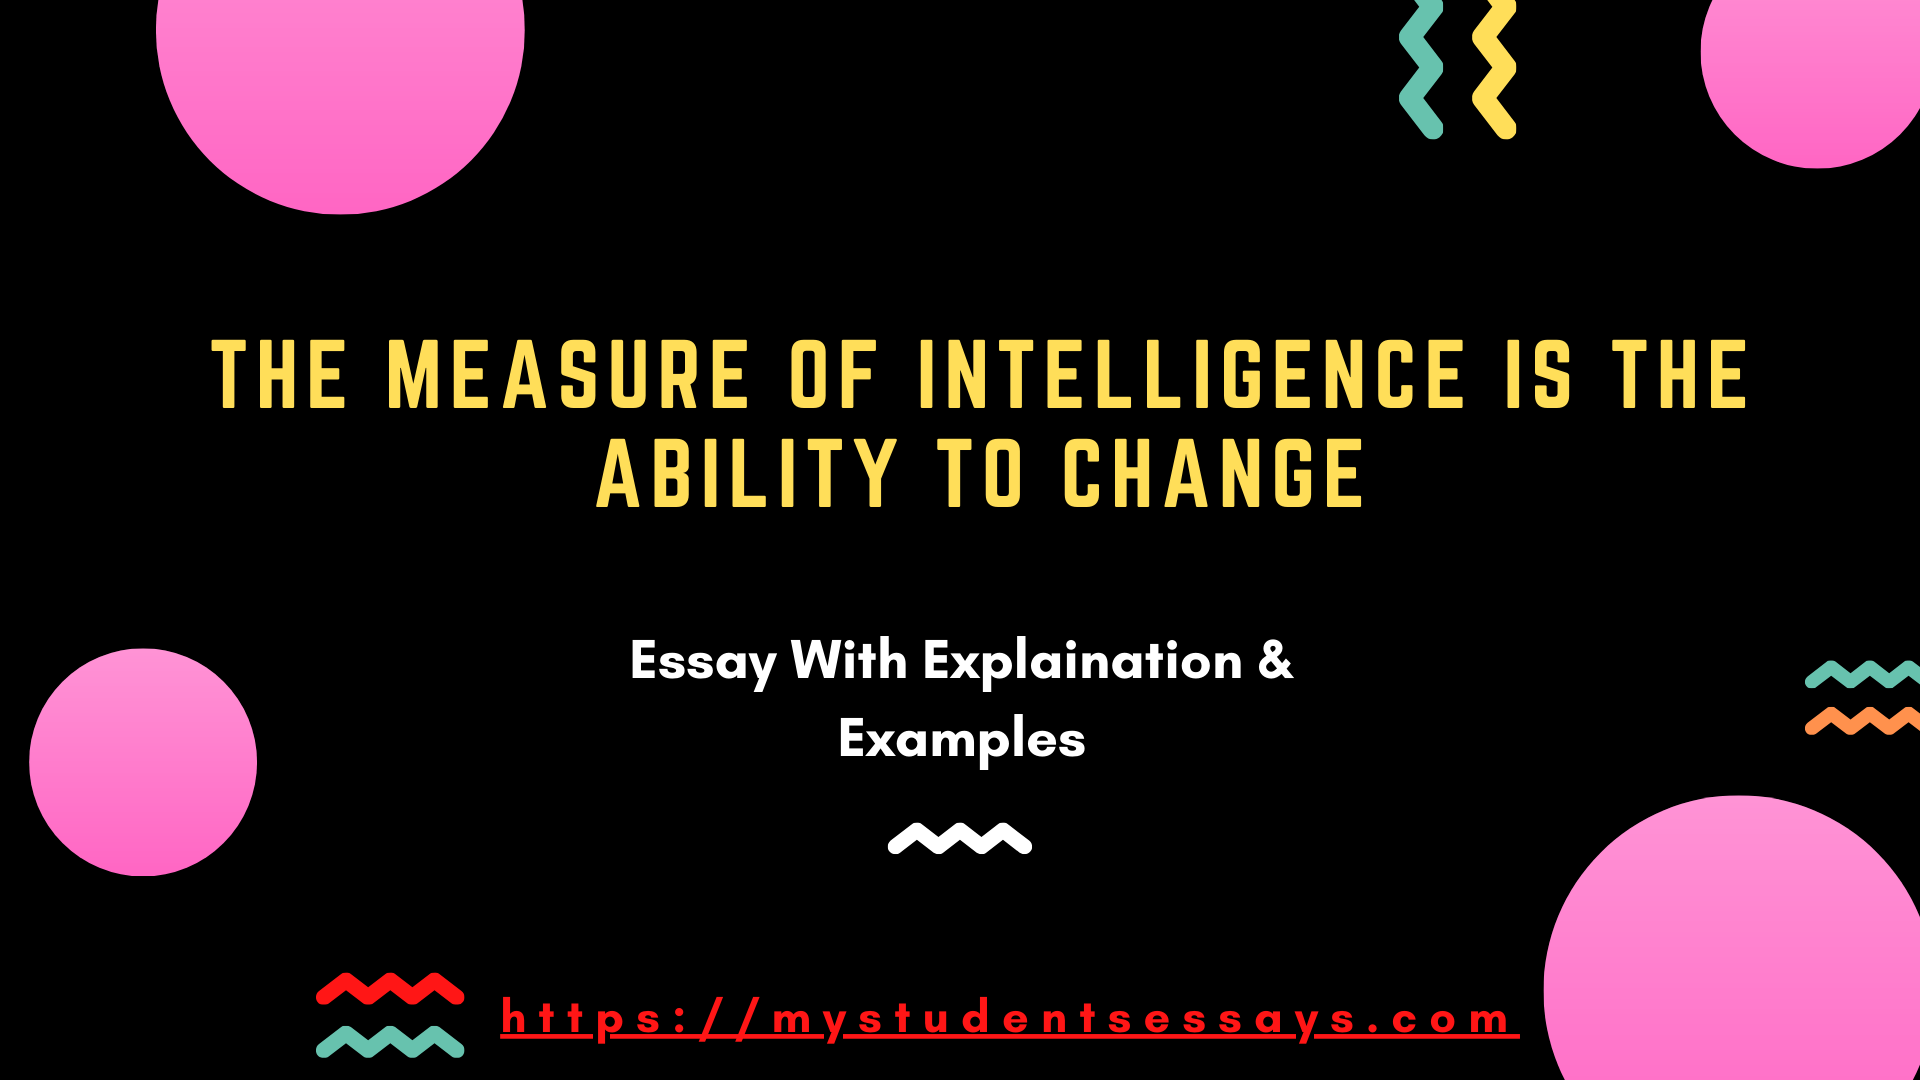 Essay on The measure of Intelligence is the ability to change for high school and college level students